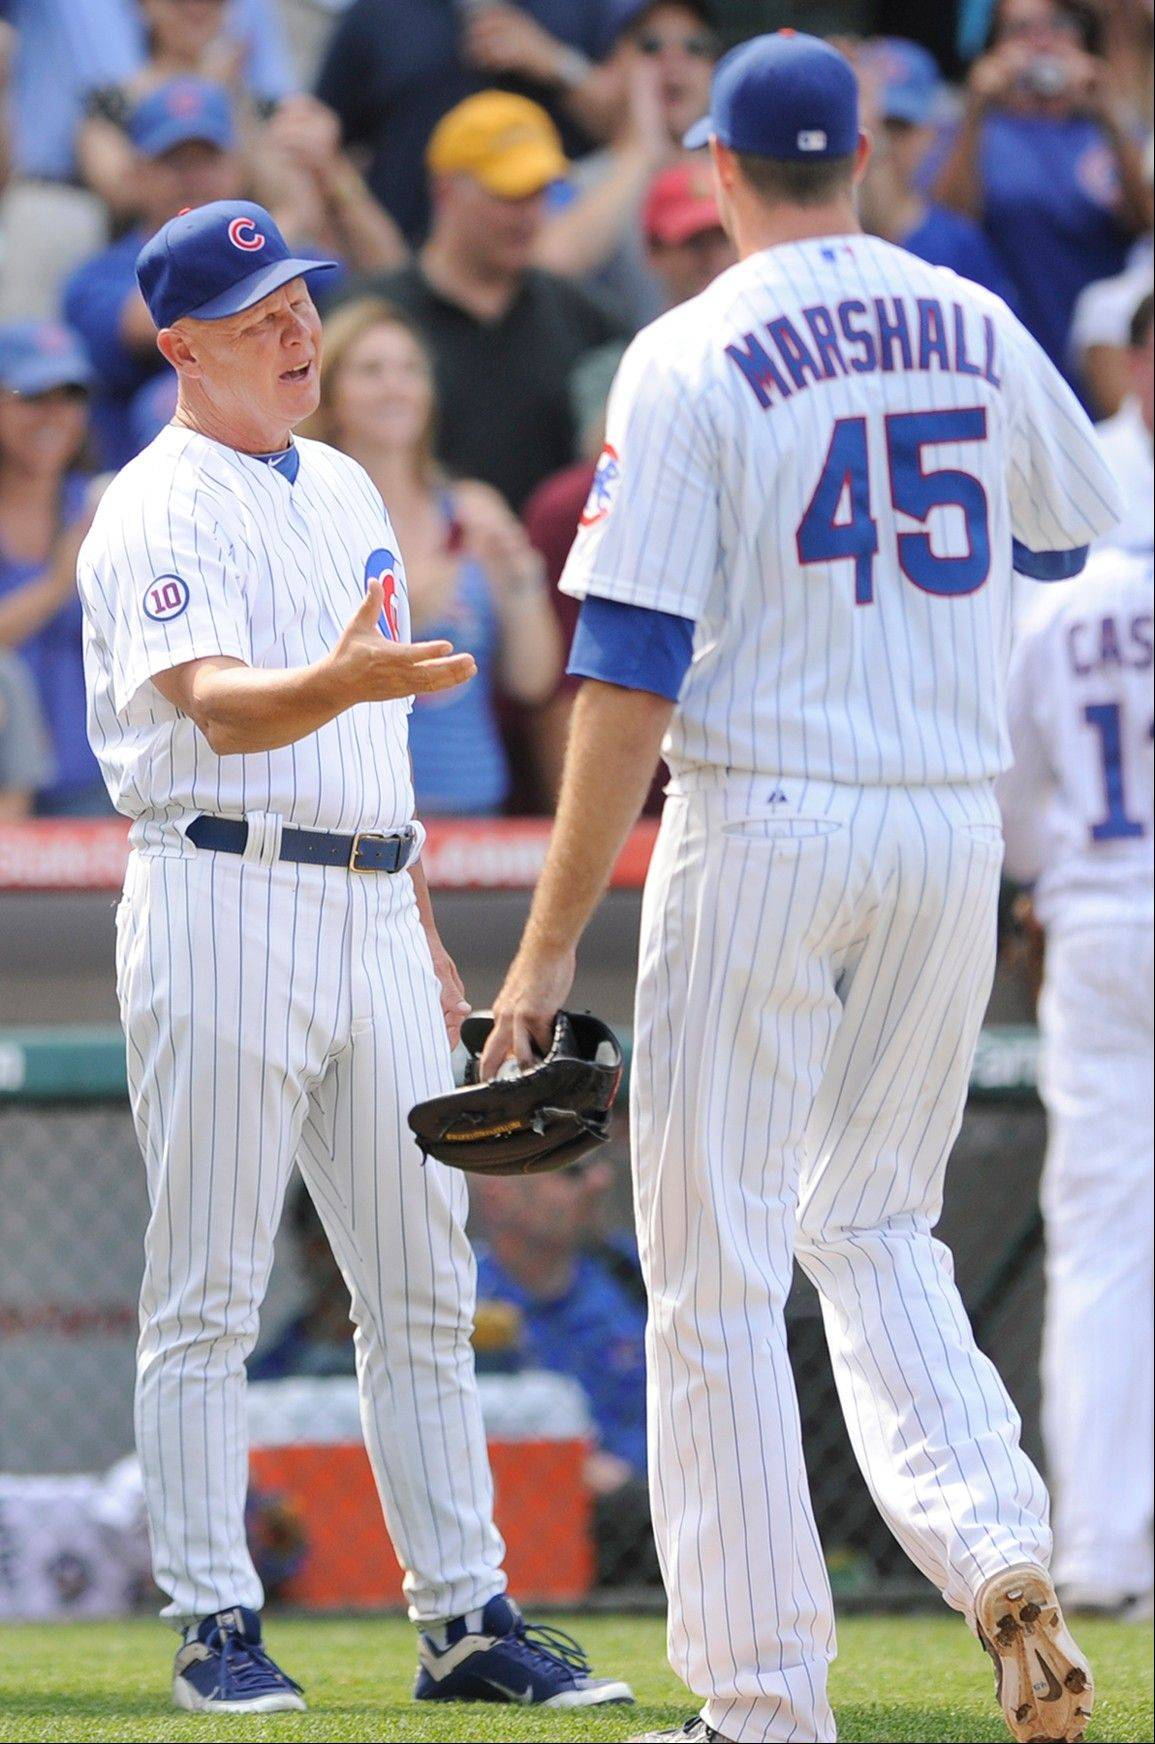 Cubs manager Mike Quade congratulates Sean Marshall after he got the final out in relief of Carlos Marmol in a 2-1 victory over the Florida Marlins.